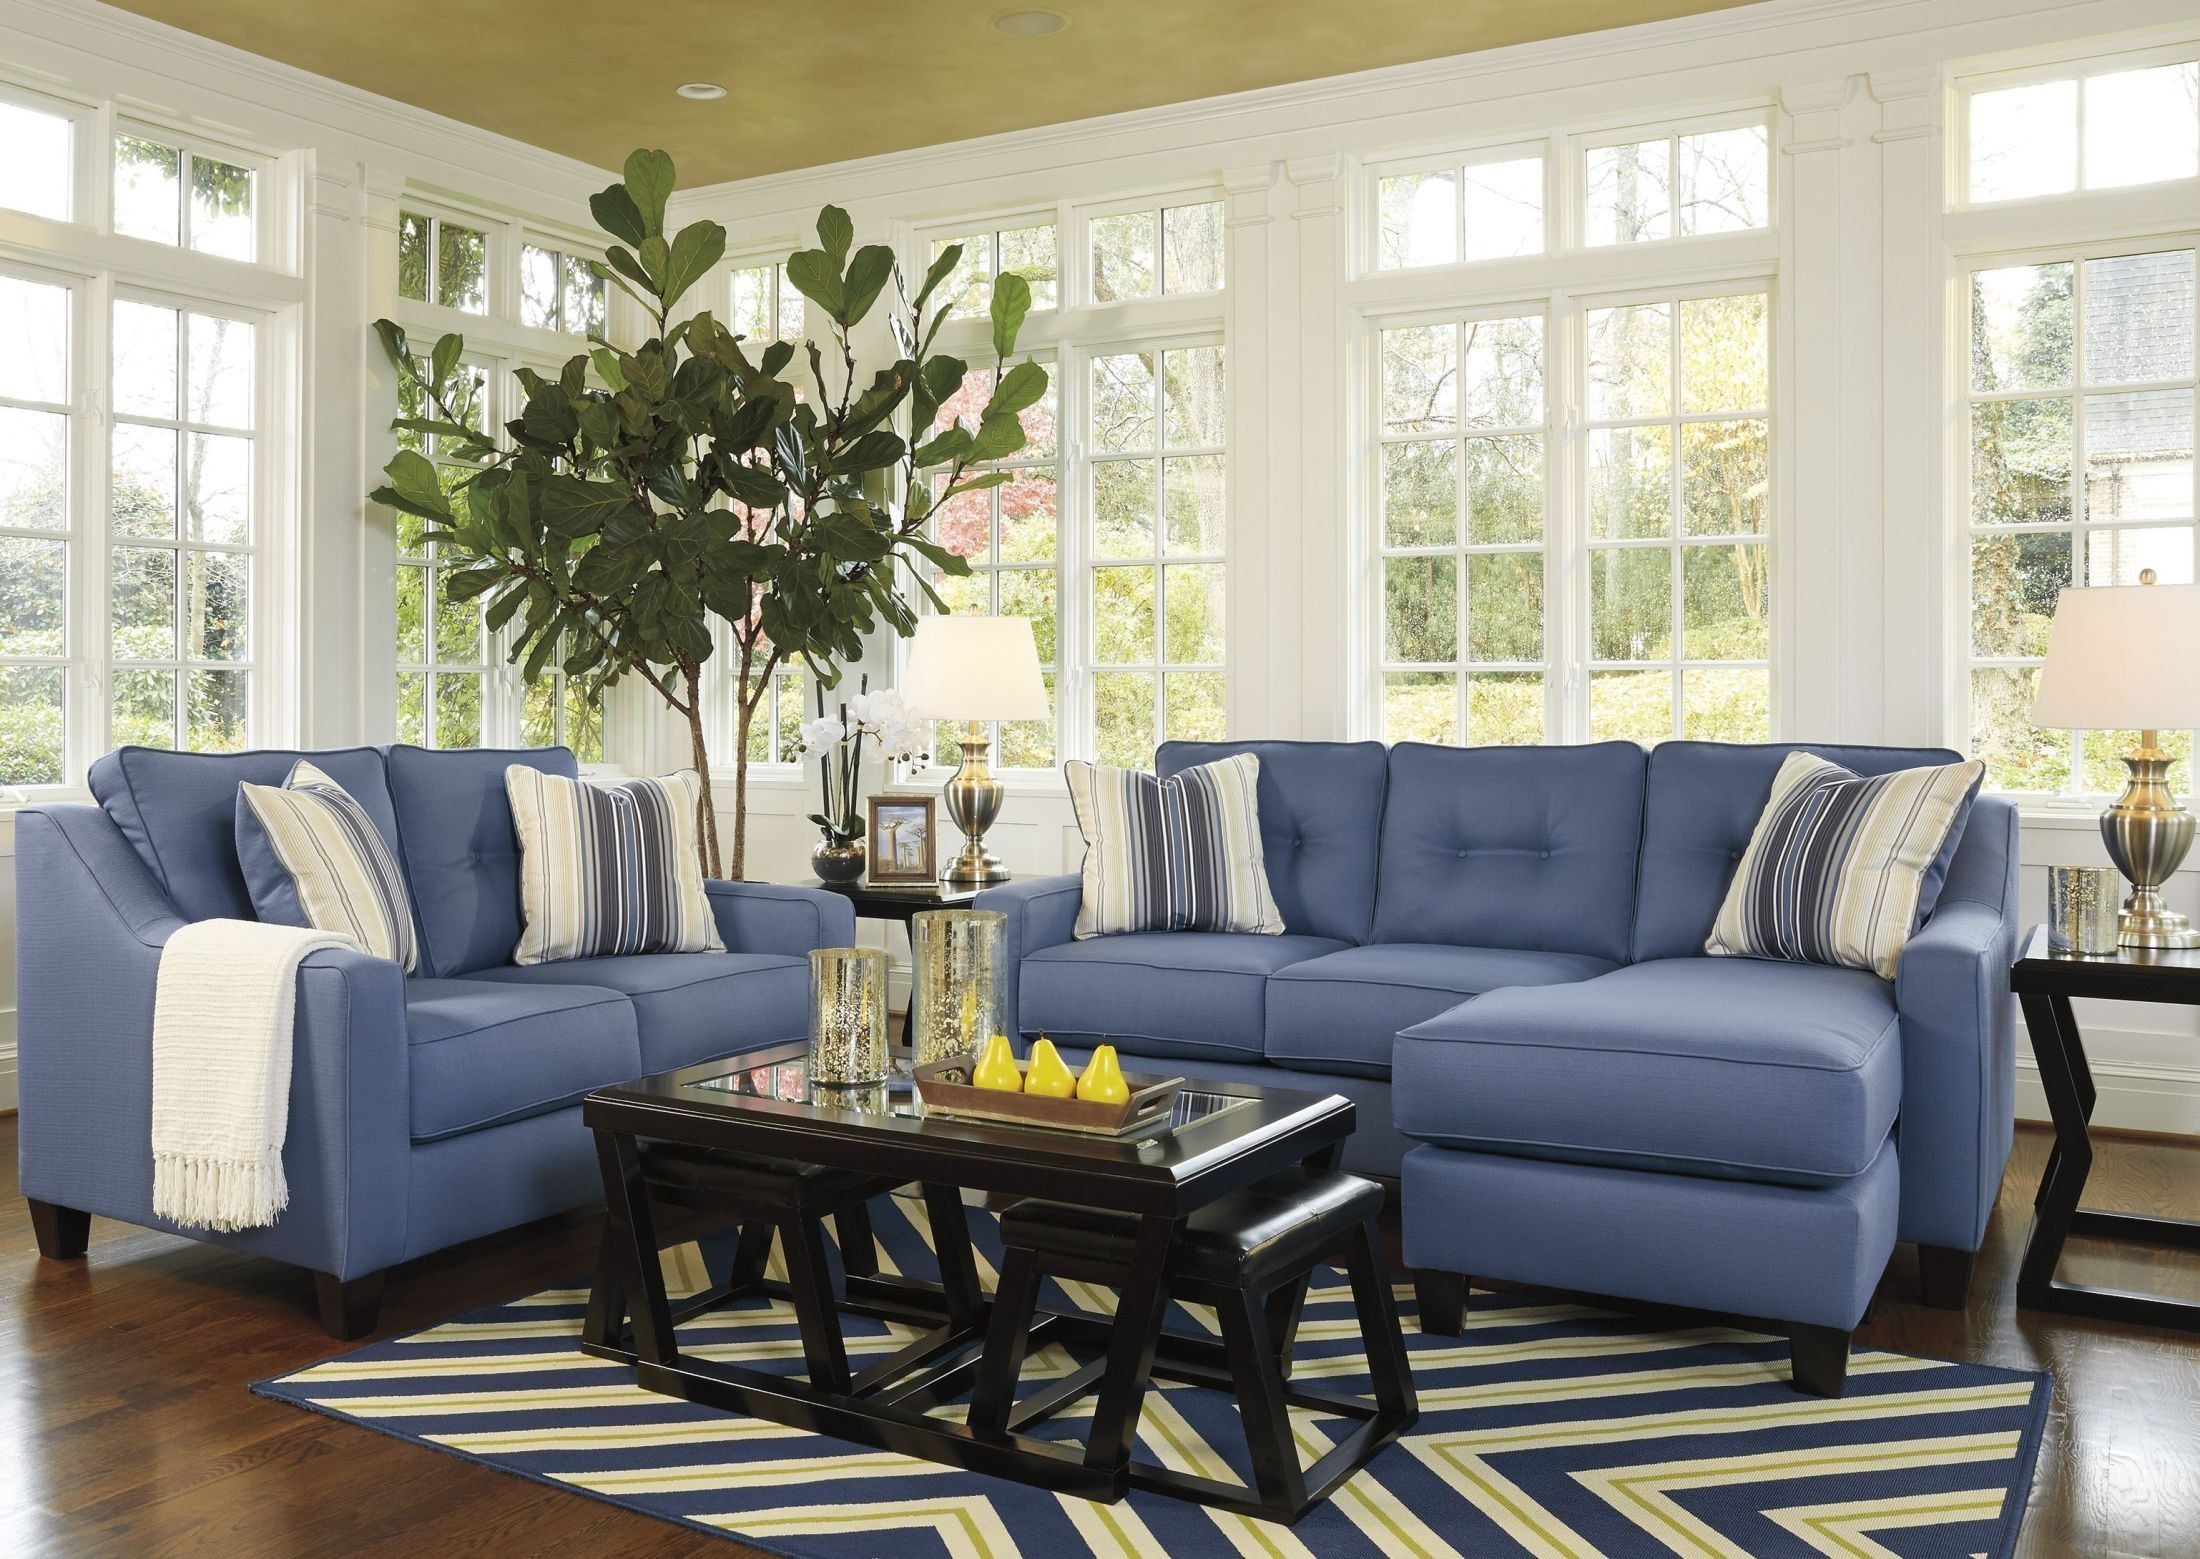 Fine Aldie Nuvella Blue Queen Sofa Chaise Sleeper Sofa Chaise Gmtry Best Dining Table And Chair Ideas Images Gmtryco